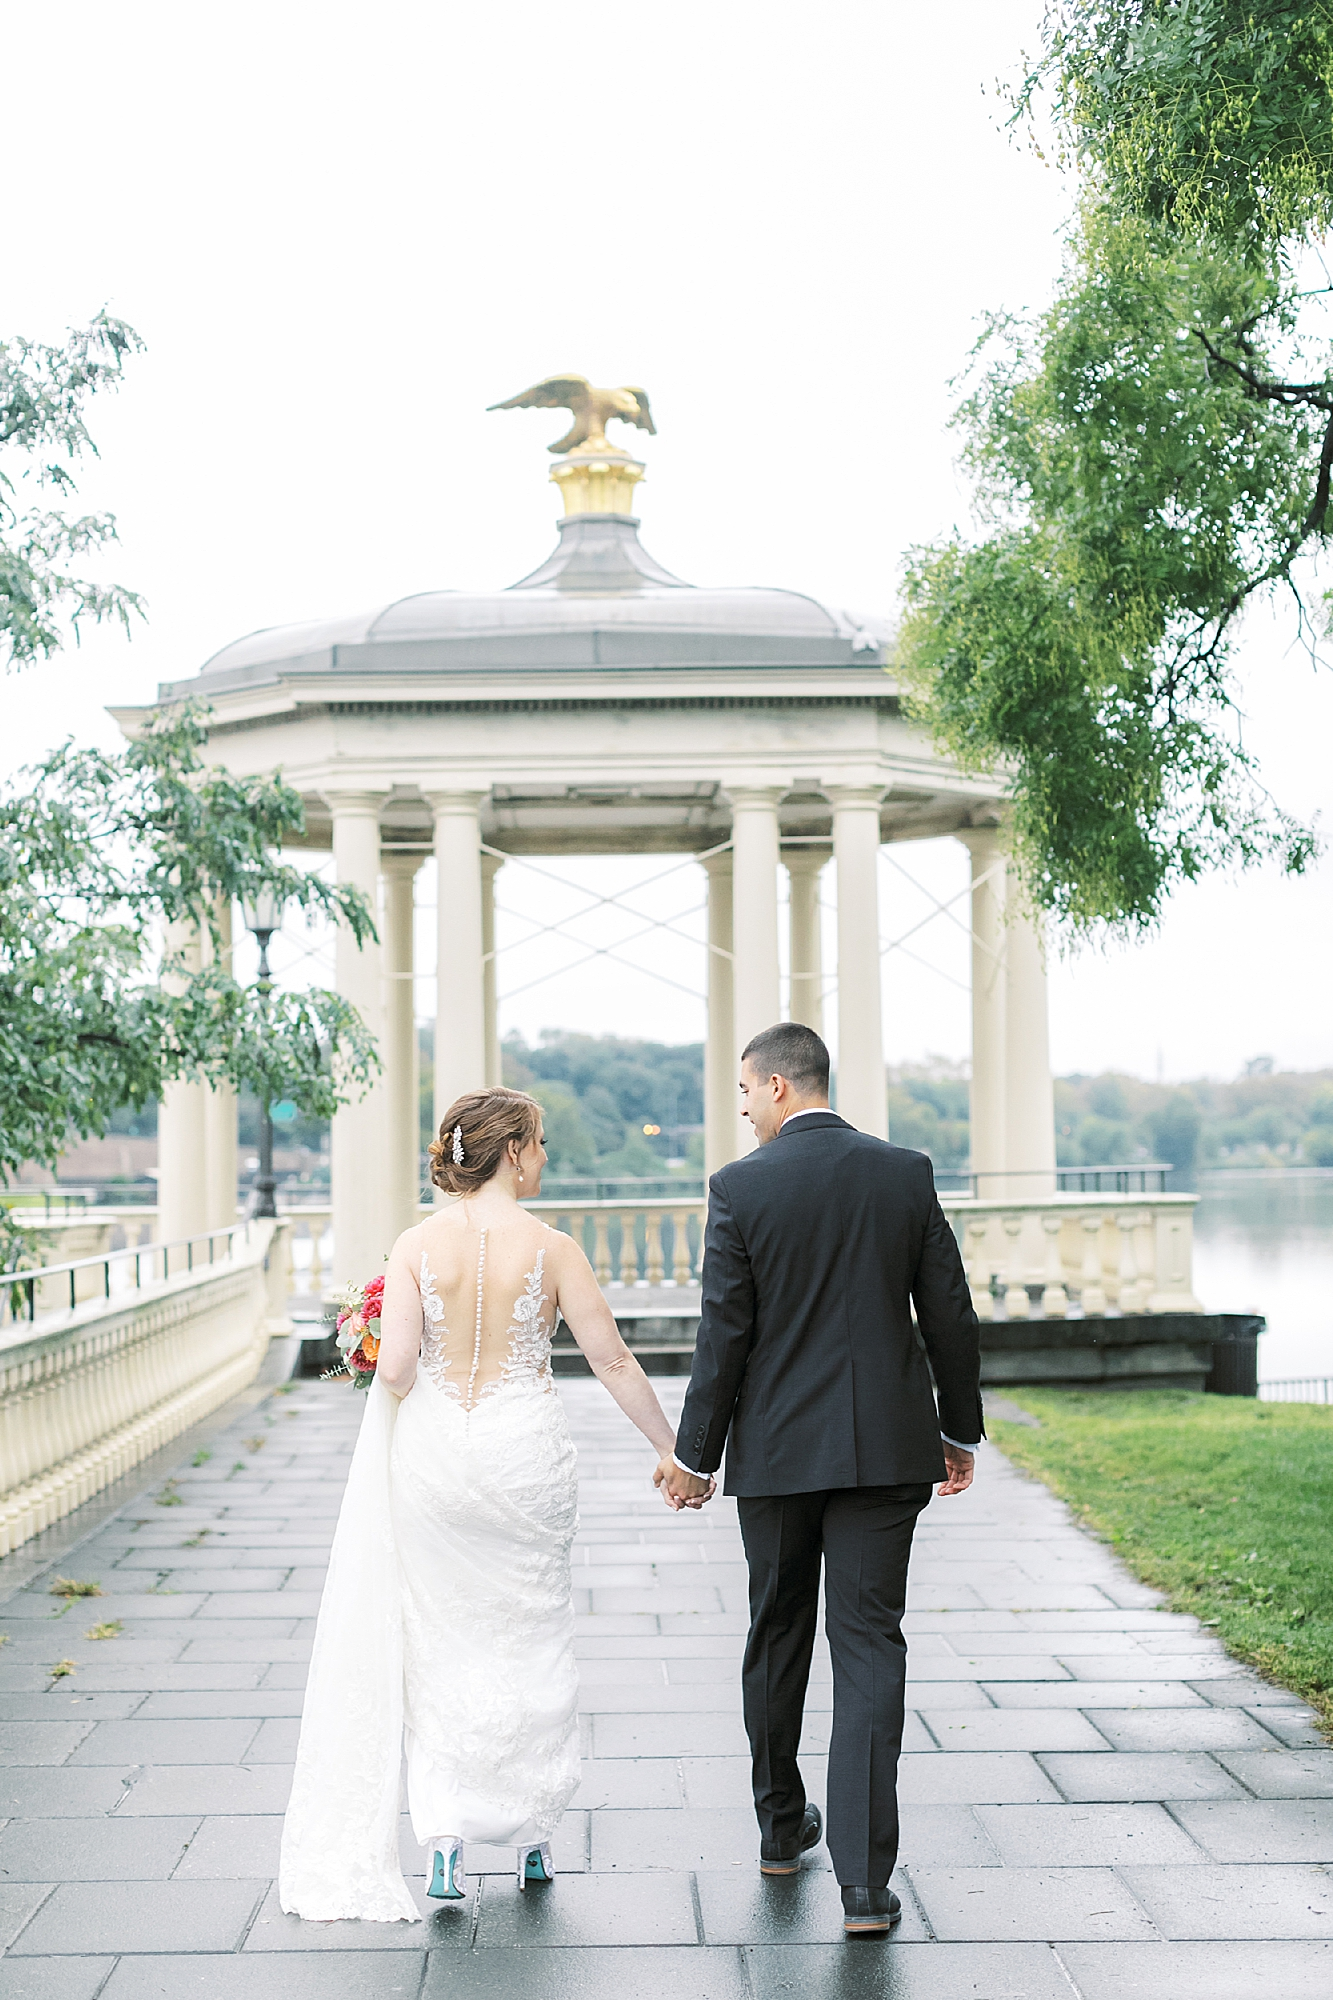 Genuine and Natural Philadelphia Wedding Photography by Magdalena Studios 0032